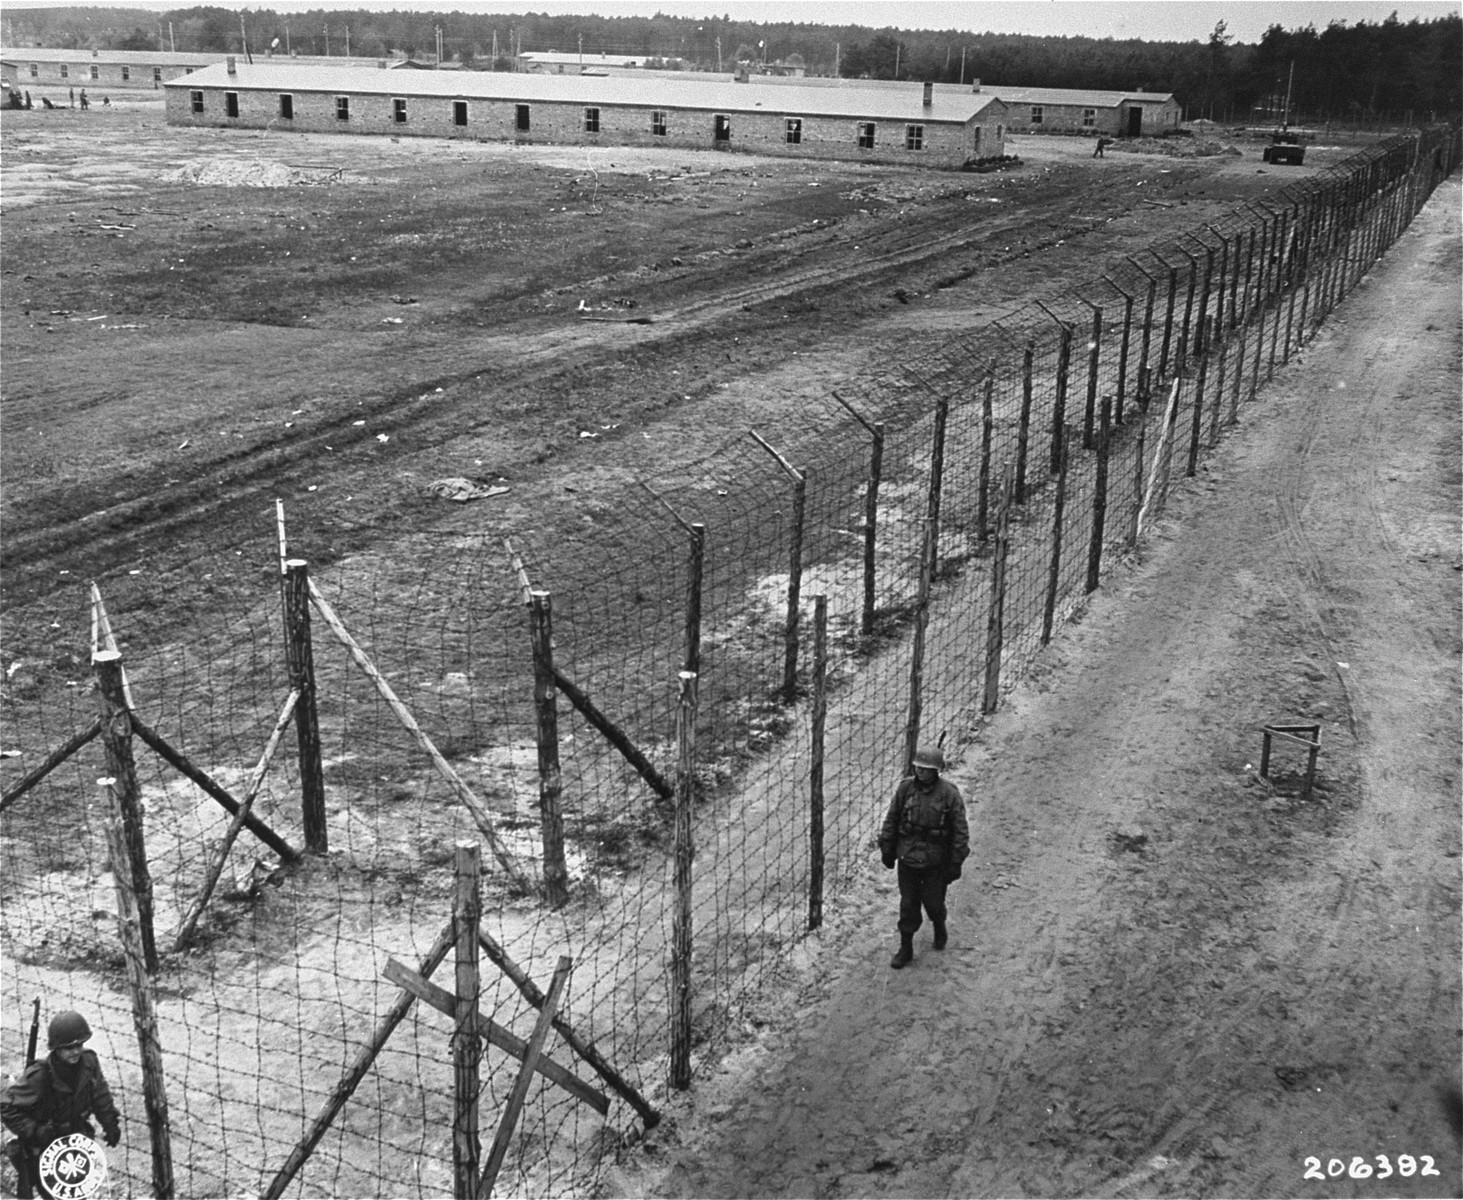 American soldiers patrol the perimeter of the newly liberated Woebbelin concentration camp.